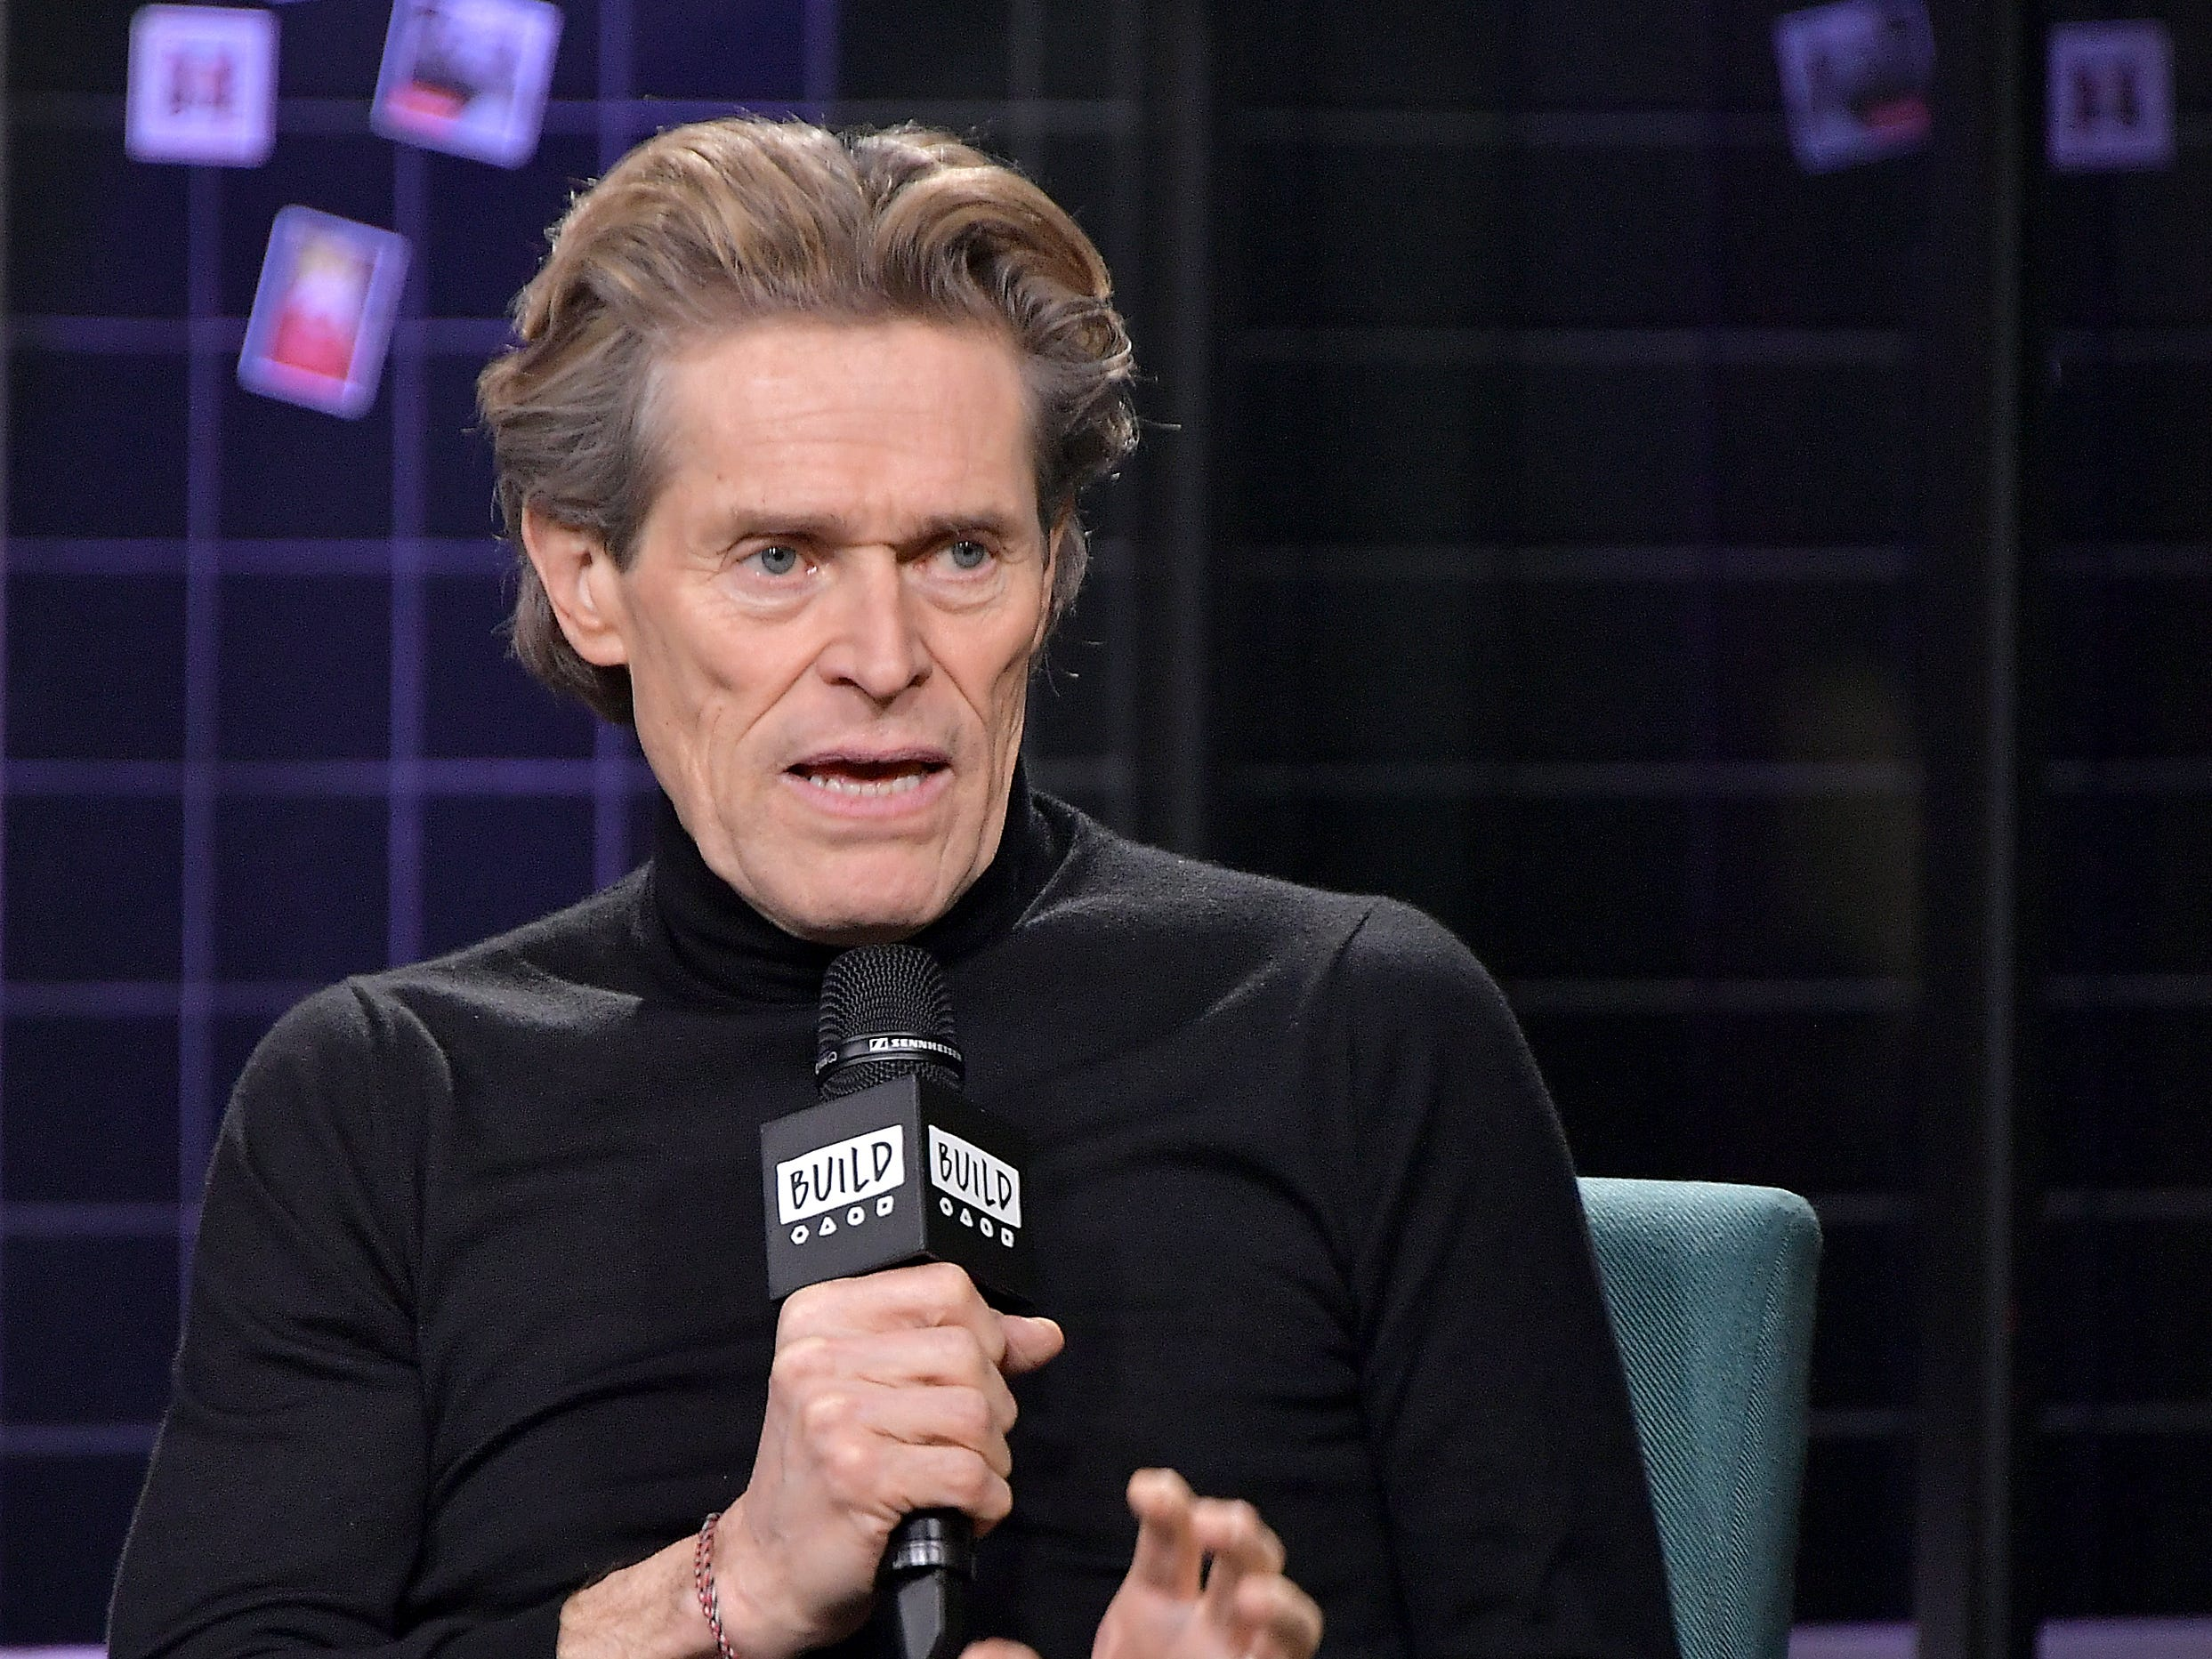 """NEW YORK, NEW YORK - DECEMBER 19: Actor Willem Dafoe  visits Build to discuss the movie """"At Eternity's Gate"""" at Build Studio on December 19, 2018 in New York City.. (Photo by Michael Loccisano/Getty Images) ORG XMIT: 775100429 ORIG FILE ID: 1084757628"""